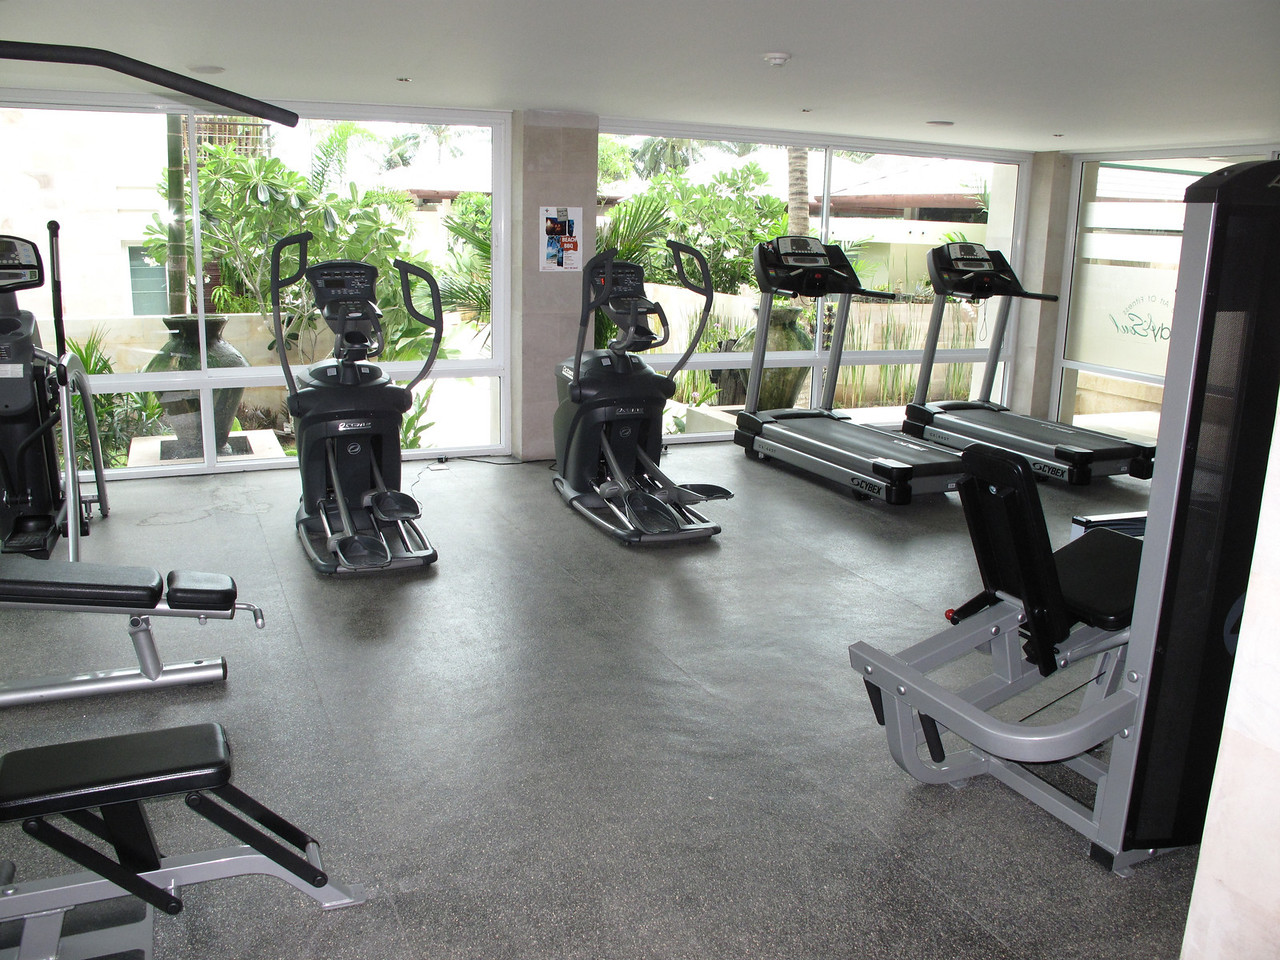 The hotel has a 600 sq ft gym with modern equipment overlooking the property.